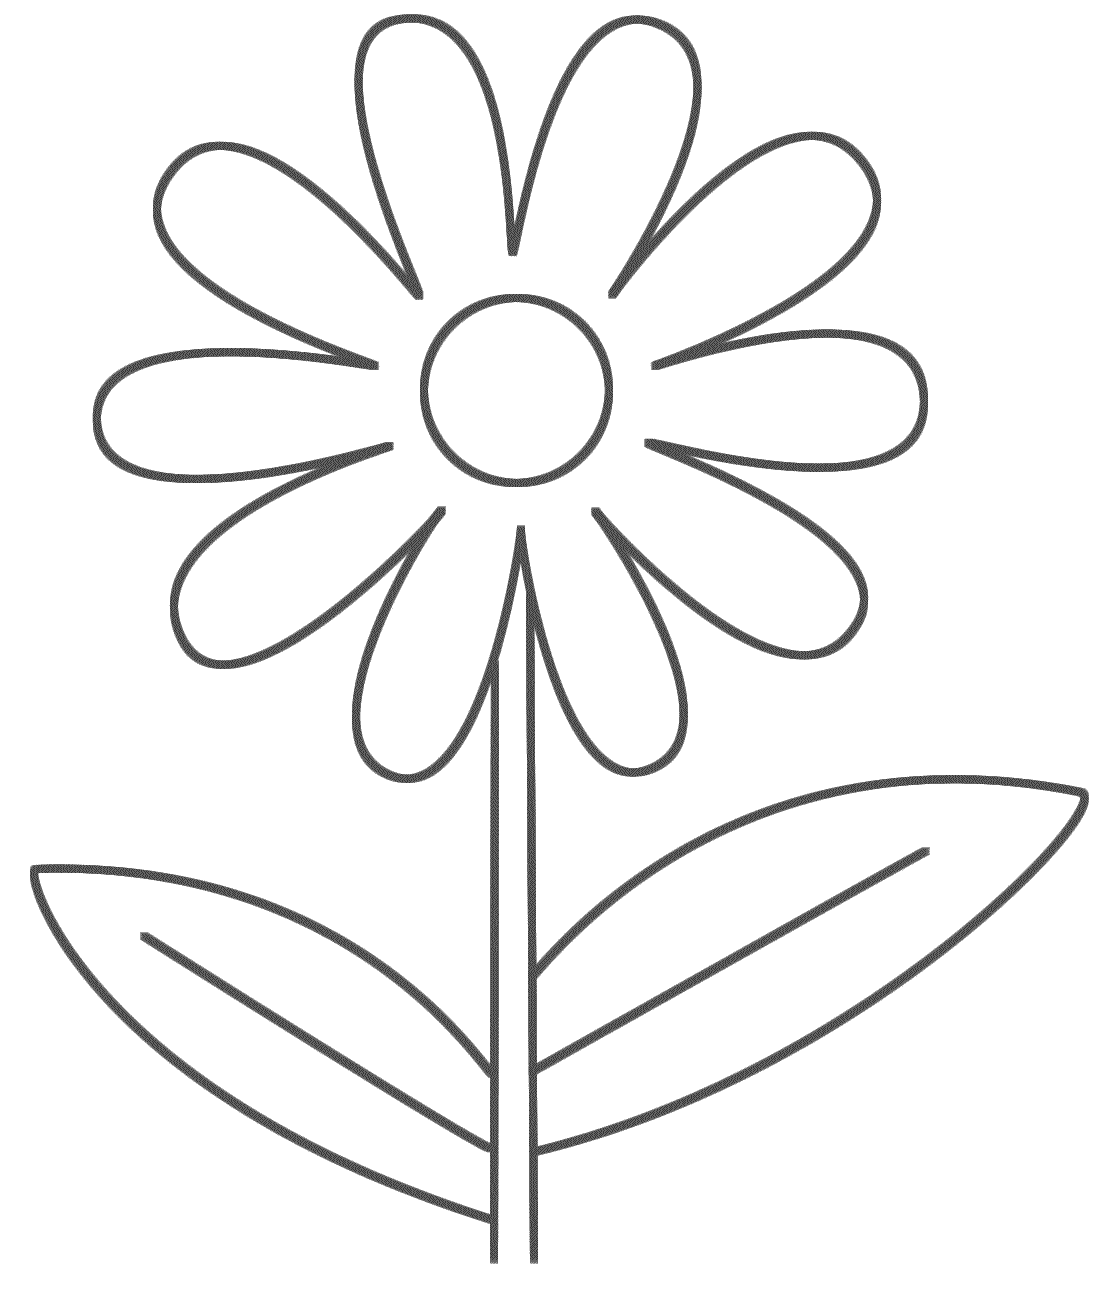 Coloring pages trees and flowers - Easy Coloring Pages Printable Christmas Tree Coloring Pages For